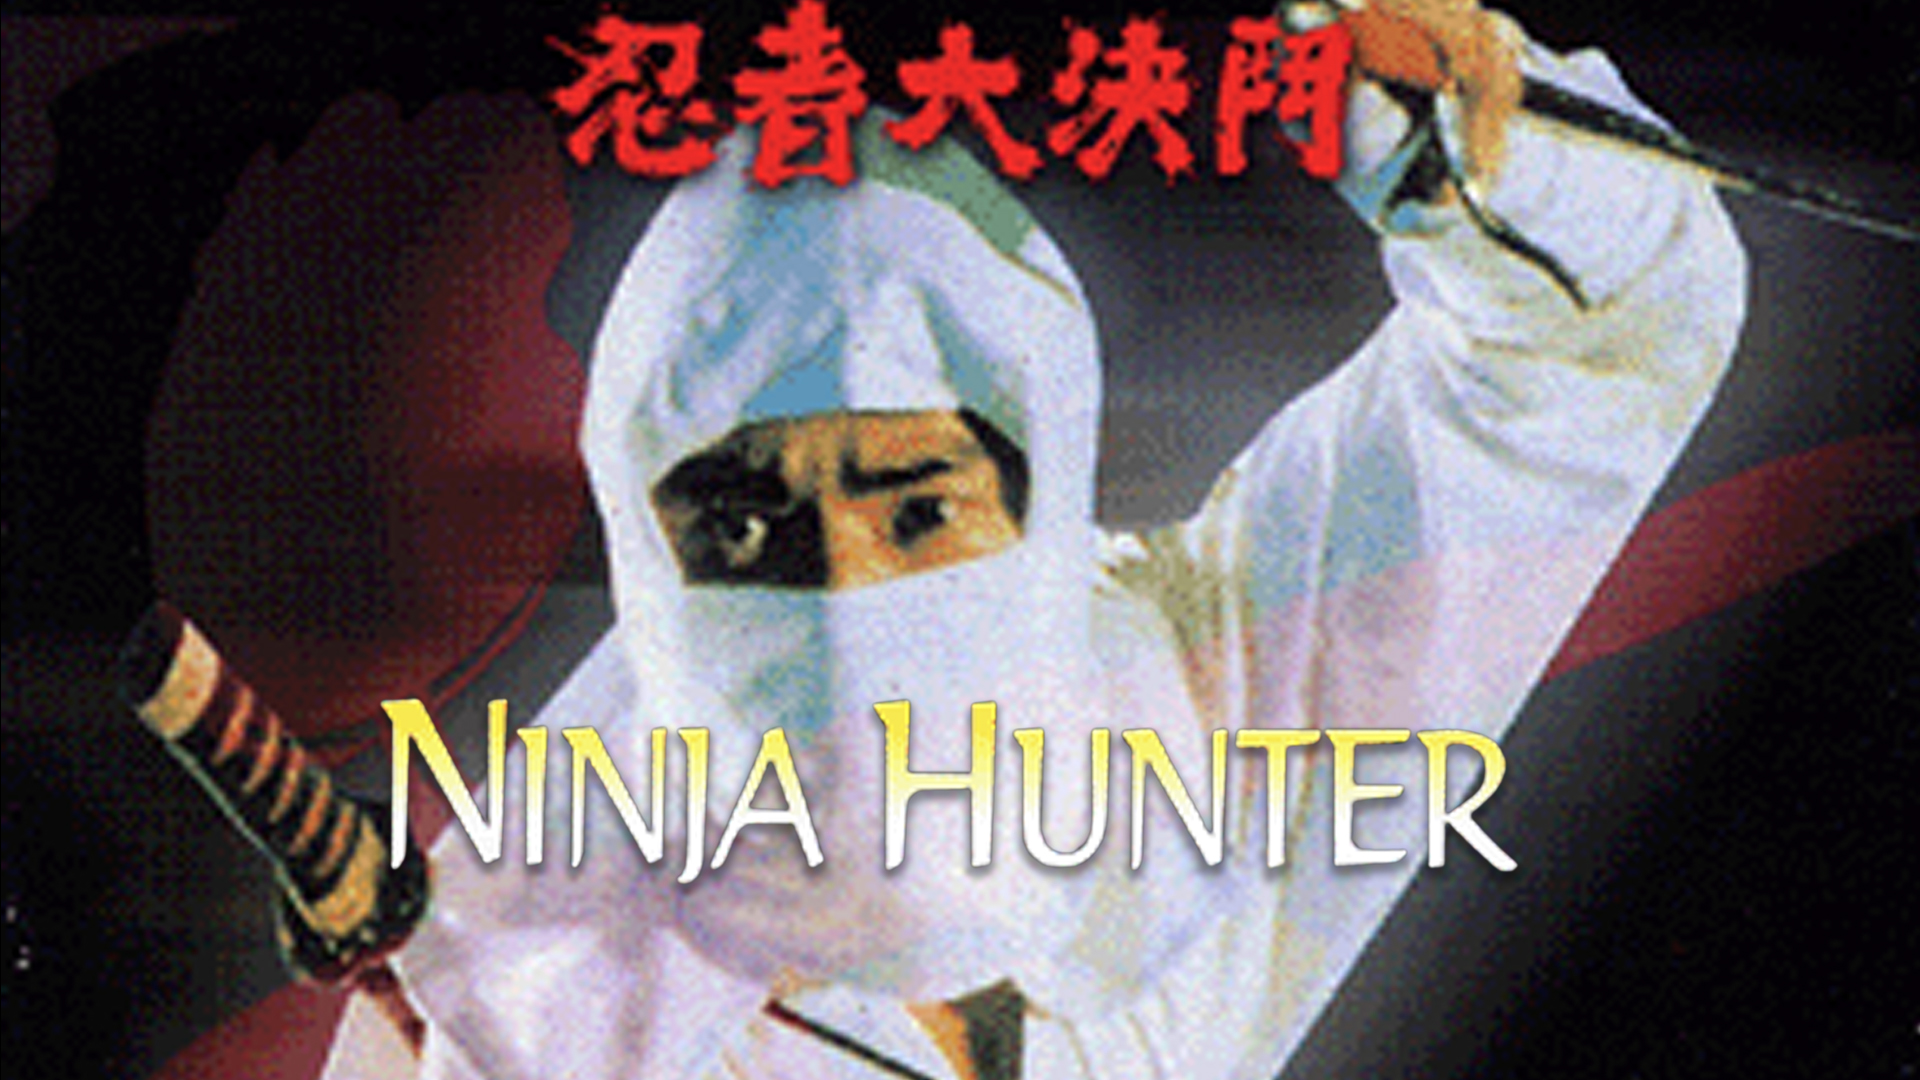 The Ninja Hunter